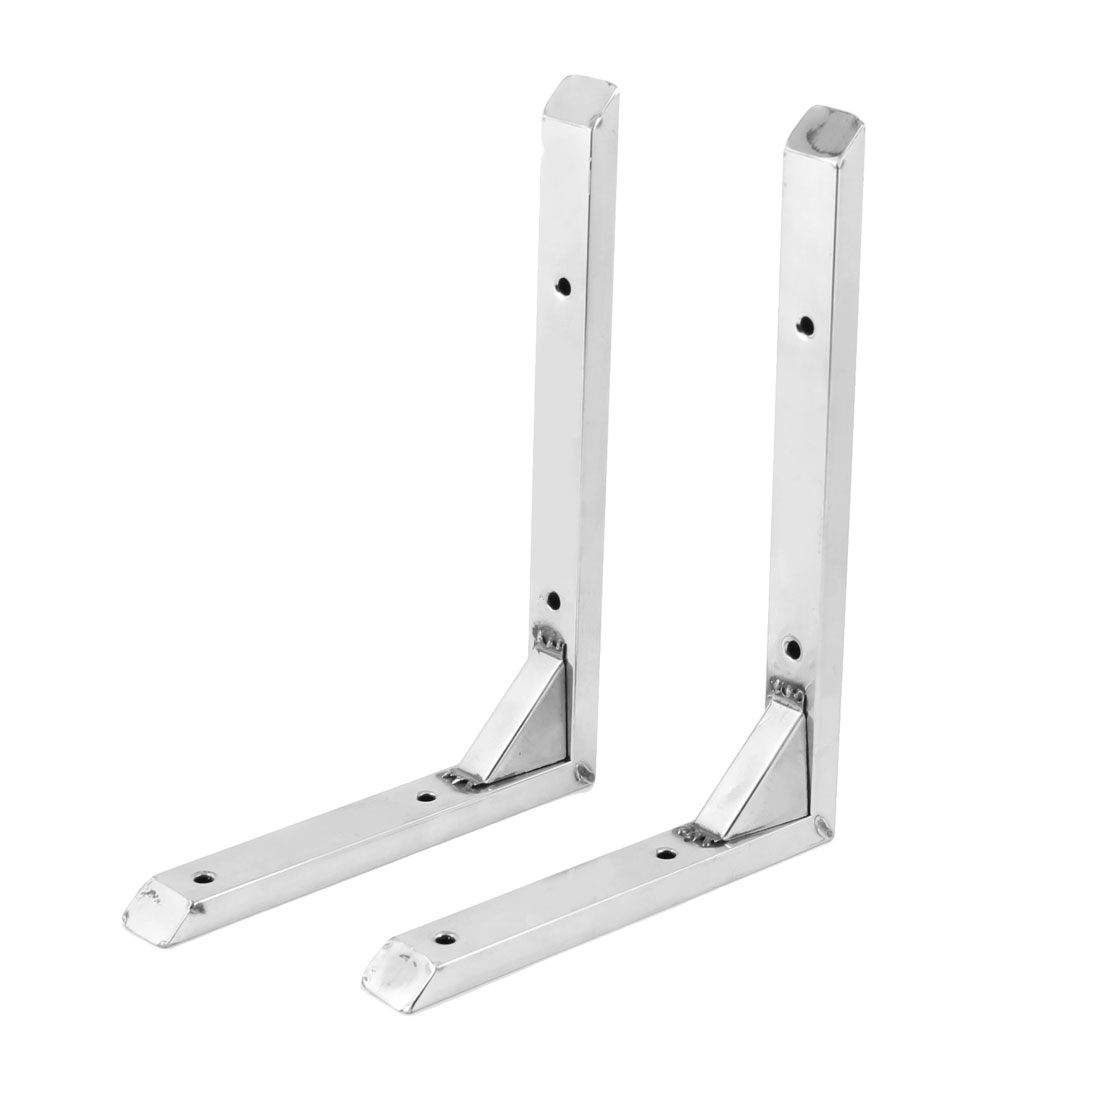 2 Pcs Stainless Steel 90 Degree 20cm x 15cm Wall Mounting Support Shelf Angle Bracket